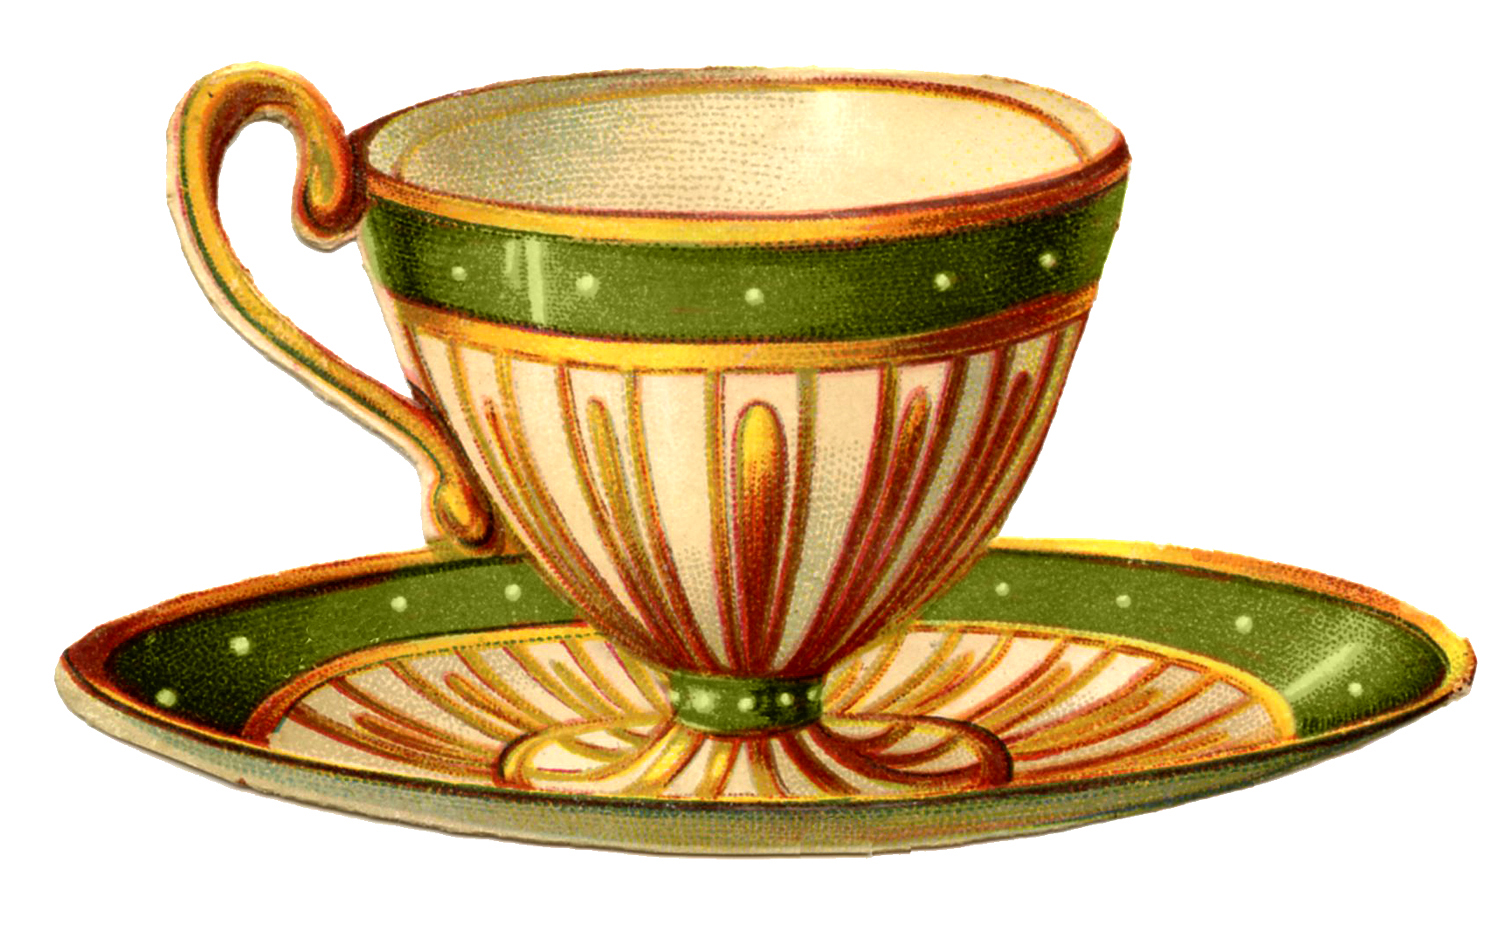 teacup+vintage+image+GraphicsFairy007green.